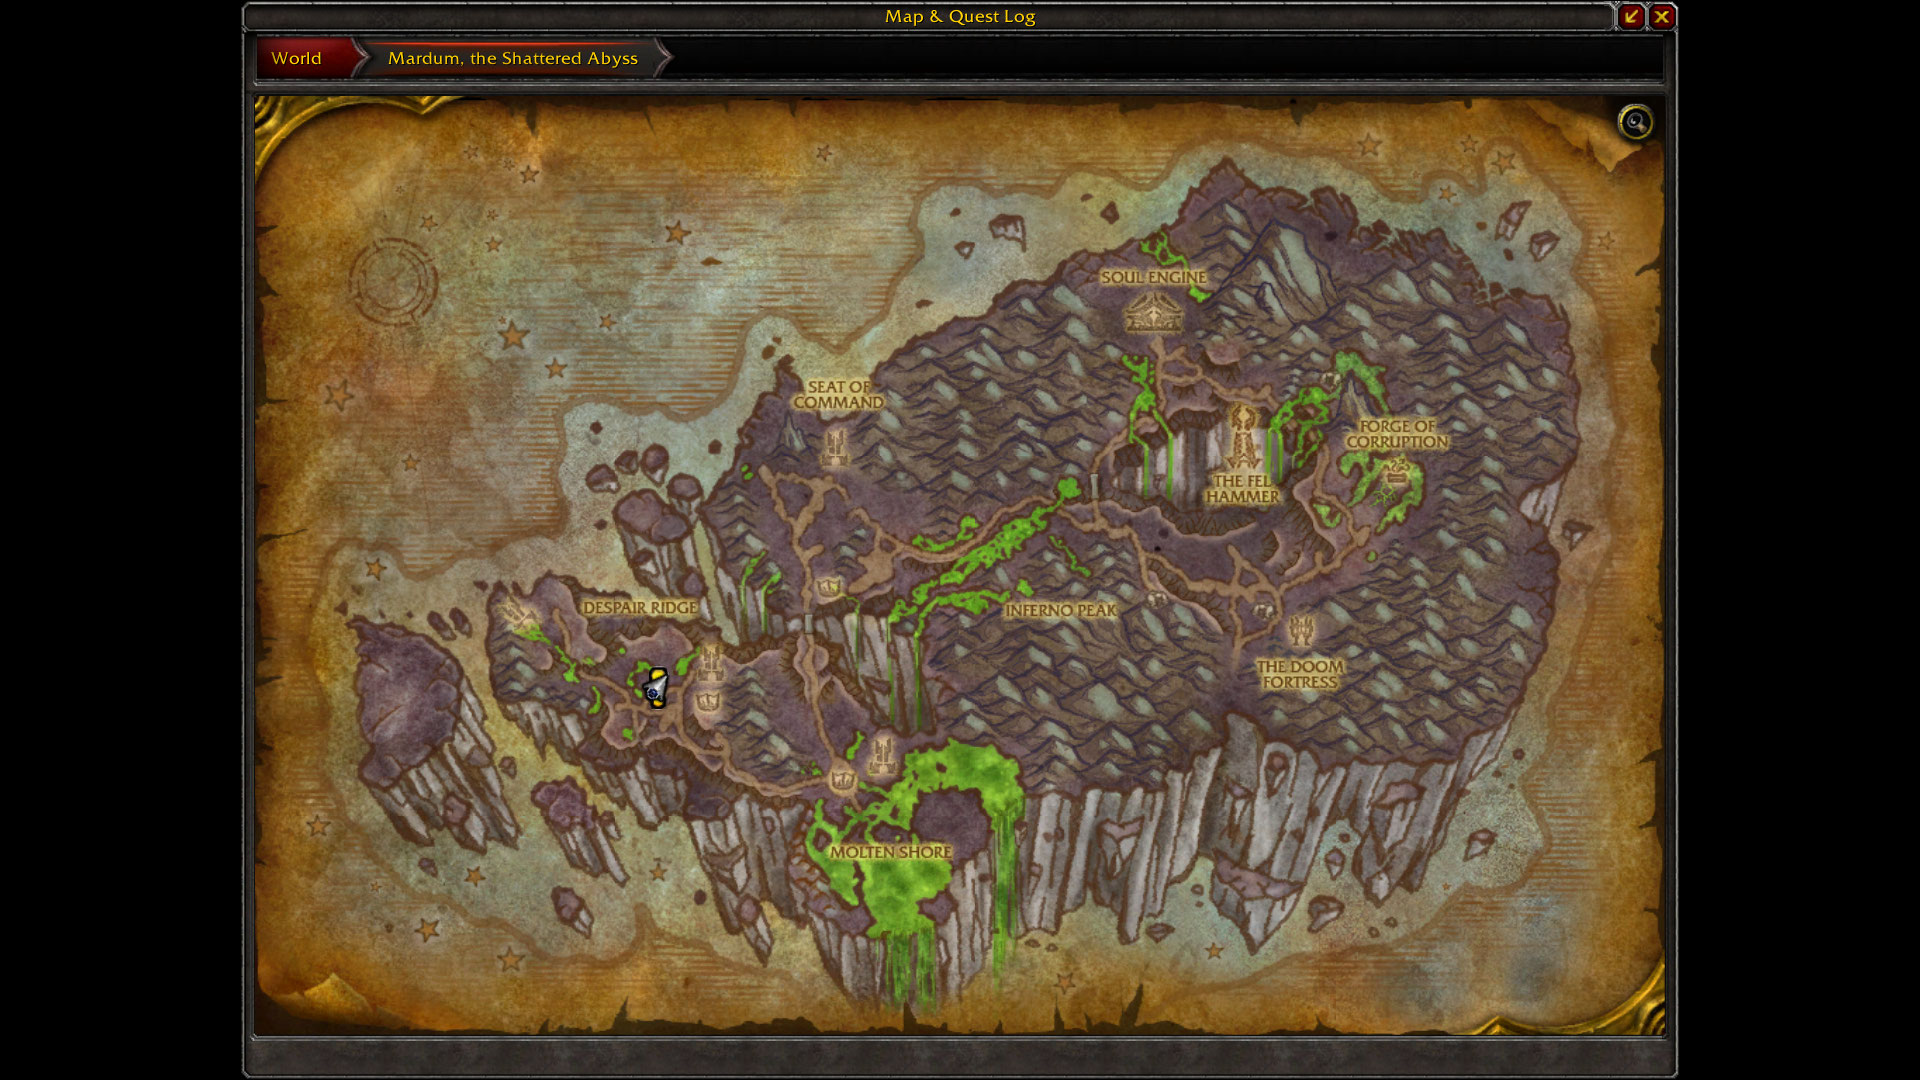 World of warcraft legion maps blizzplanet warcraft i post news about world of warcraft starcraft ii diablo iii hearthstone overwatch heroes of the storm blizzard careers and the warcraft film gumiabroncs Choice Image